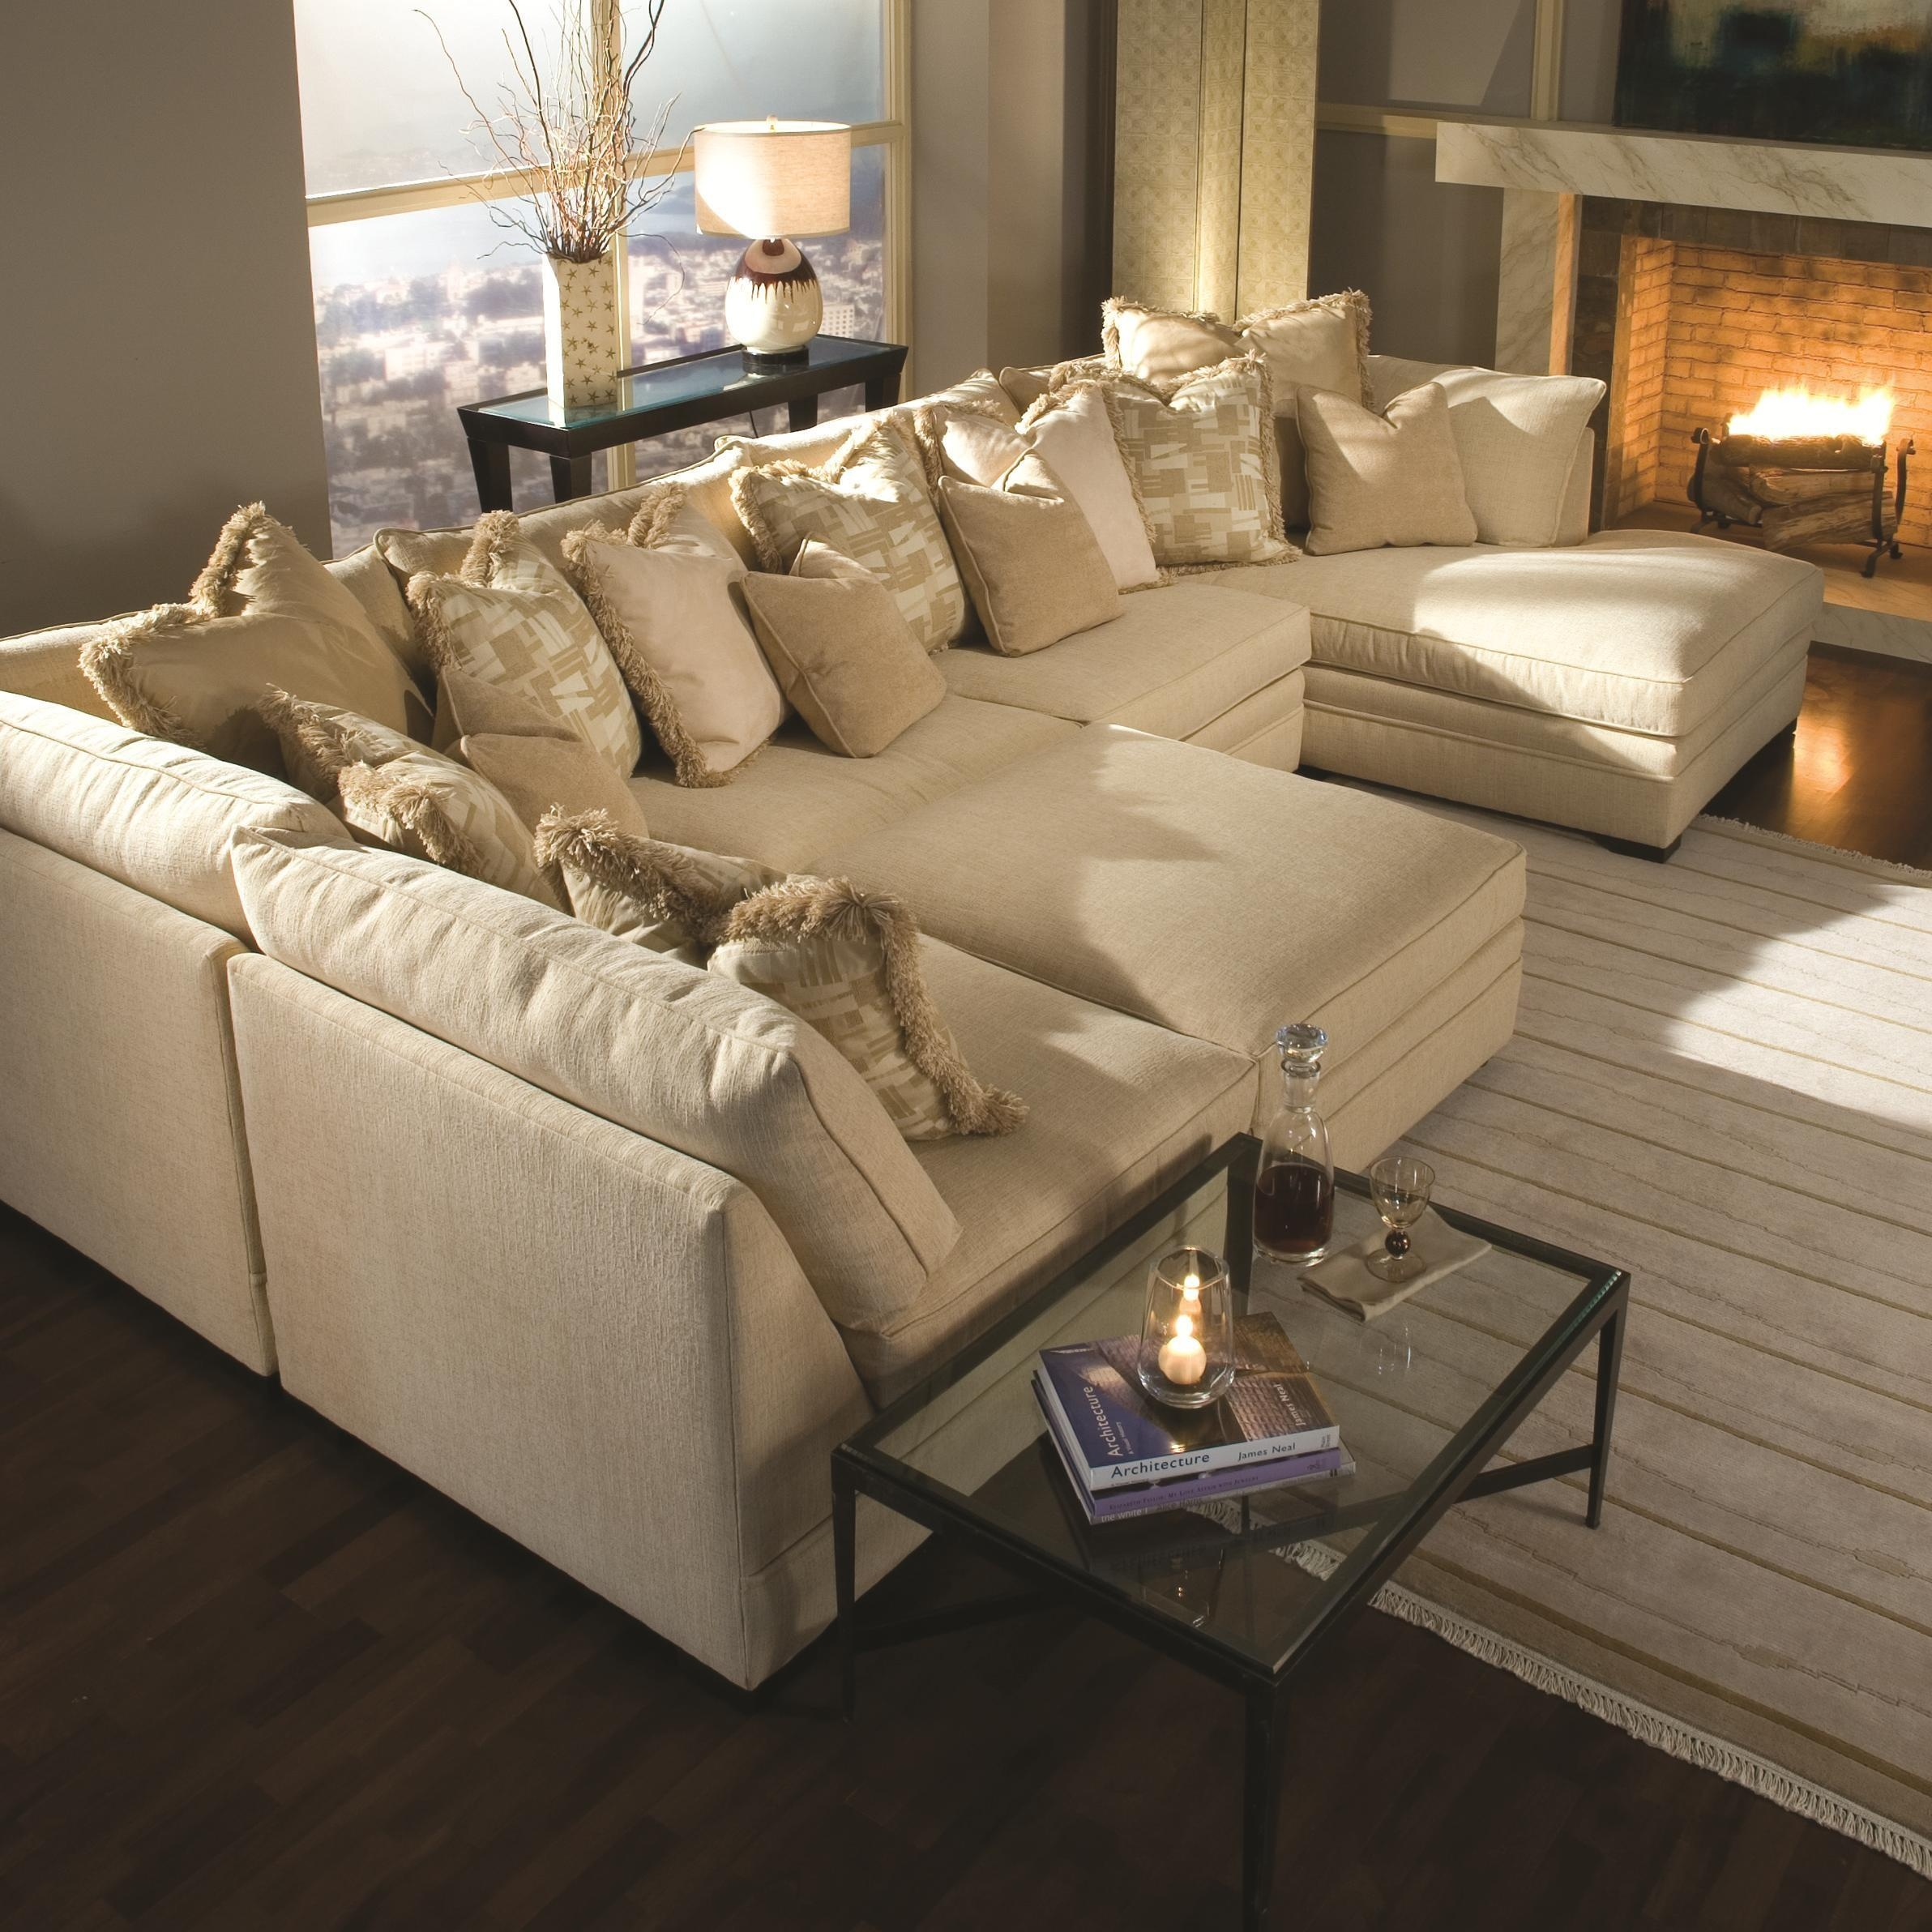 Interior: Admirable Oversized Sectional Sofas With Oversized In Oversized Sectional Sofa (Image 10 of 20)